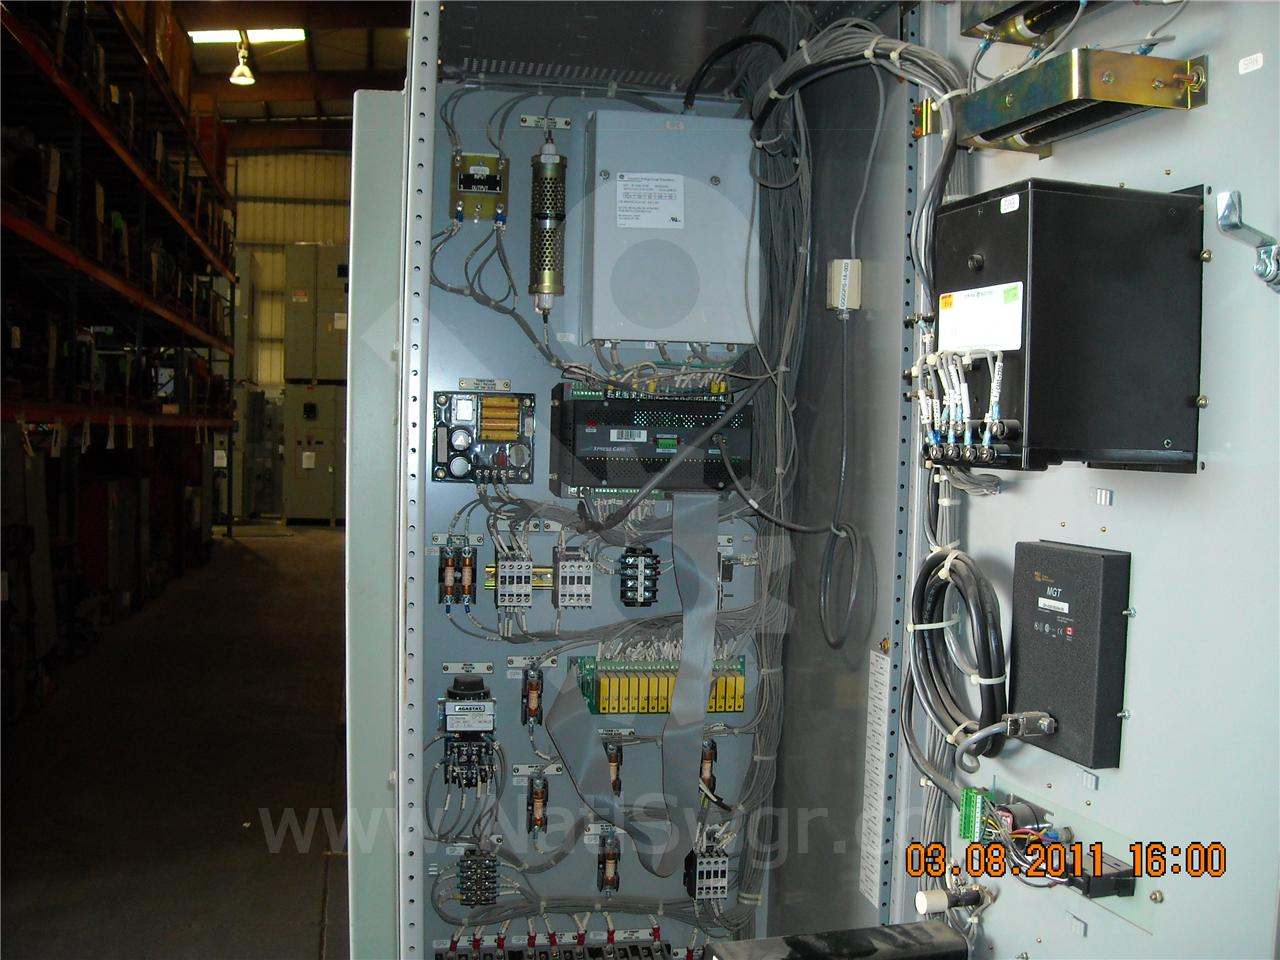 AKD-8 4000A GE / General Electric AKD-8 INDOOR SWITCHGEAR METER AND CONTROL SECTION